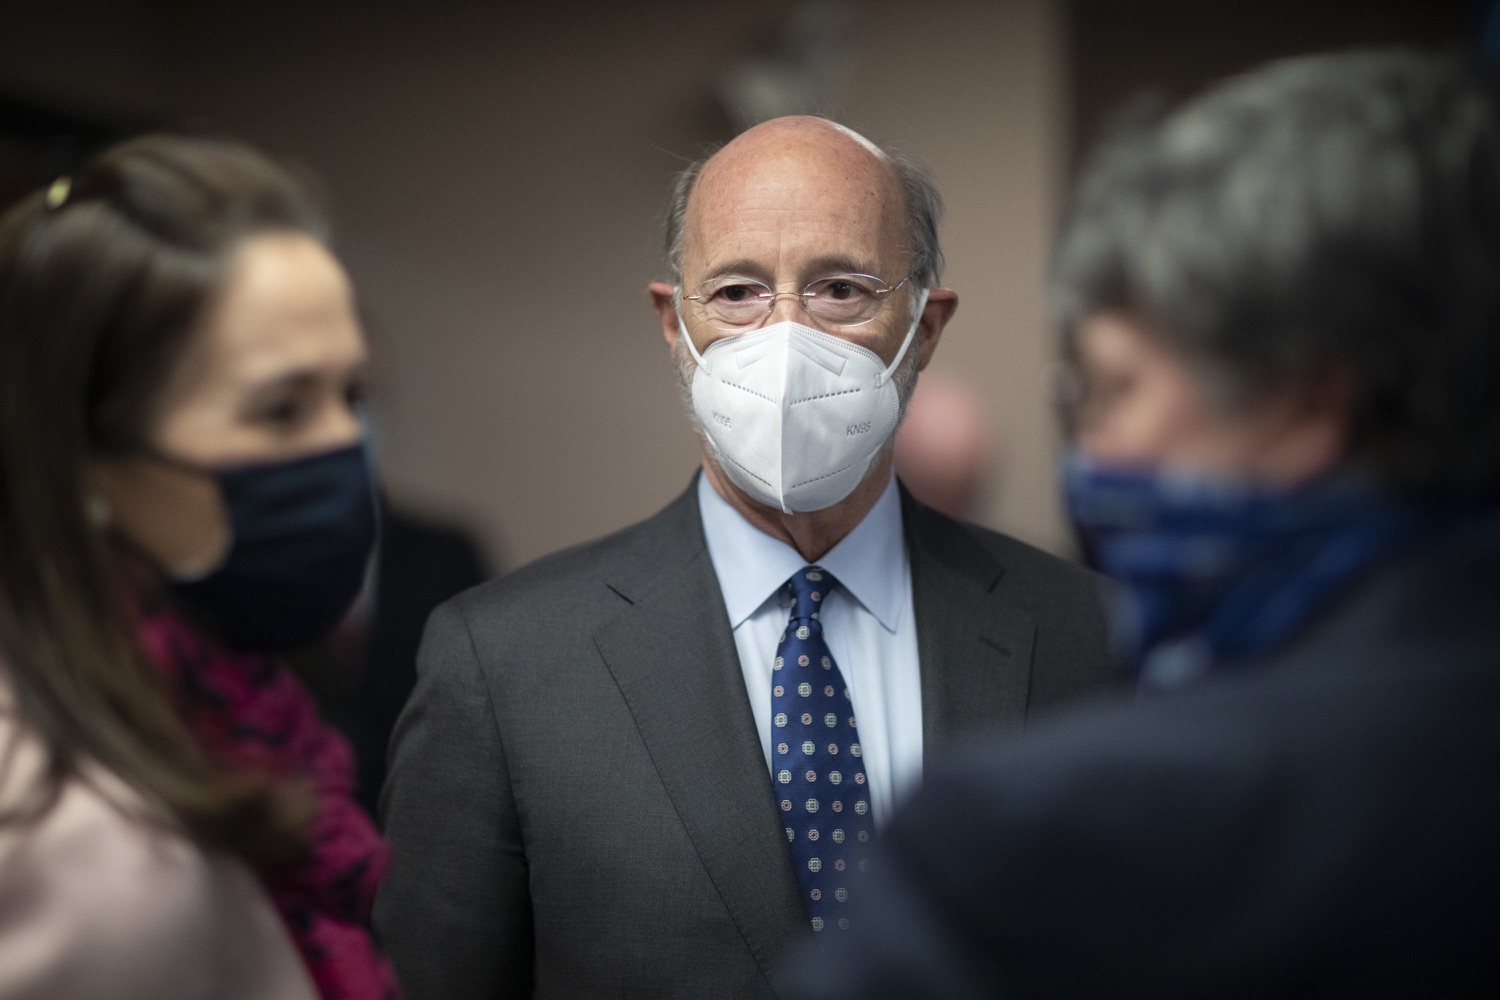 """<a href=""""https://filesource.wostreaming.net/commonwealthofpa/photo/18646_gov_vaccines_dz_009.jpg"""" target=""""_blank"""">⇣Download Photo<br></a>Pennsylvania Governor Tom Wolf speaking before the press conference.  After vaccinating more than 112,500 teachers and school staff in only about three weeks, Governor Tom Wolf visited Luzerne County today to announce the special vaccination initiative is a success and was completed ahead of schedule. The accomplishment is an important step to help more students and teachers safely return to classrooms across the state.  Kingston, PA - April 2, 2021"""